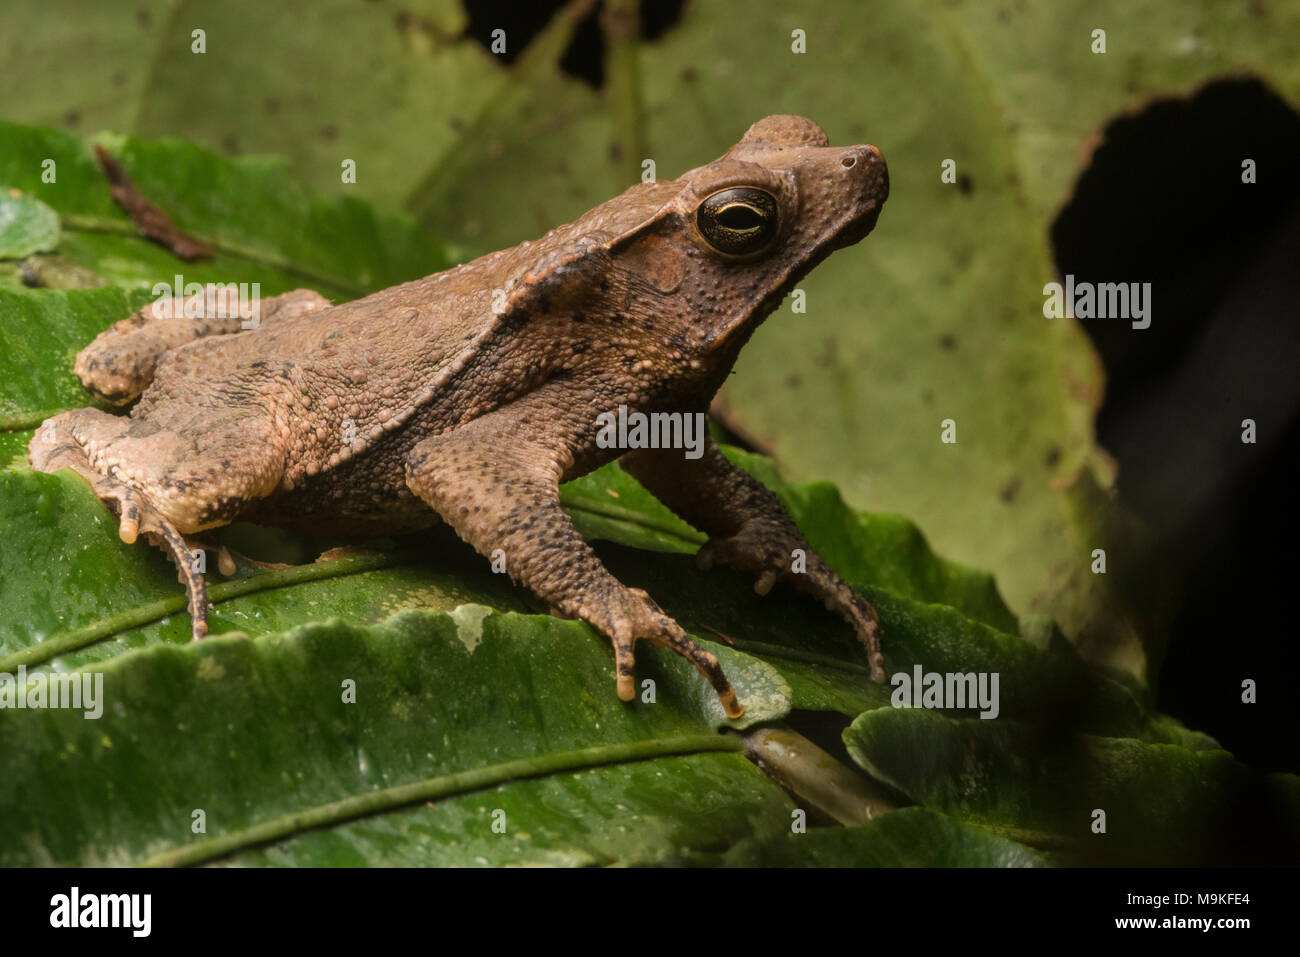 A South American common toad (Rhinella margaritifera), these toads represent a species complex of undiscovered species that still need describing. - Stock Image